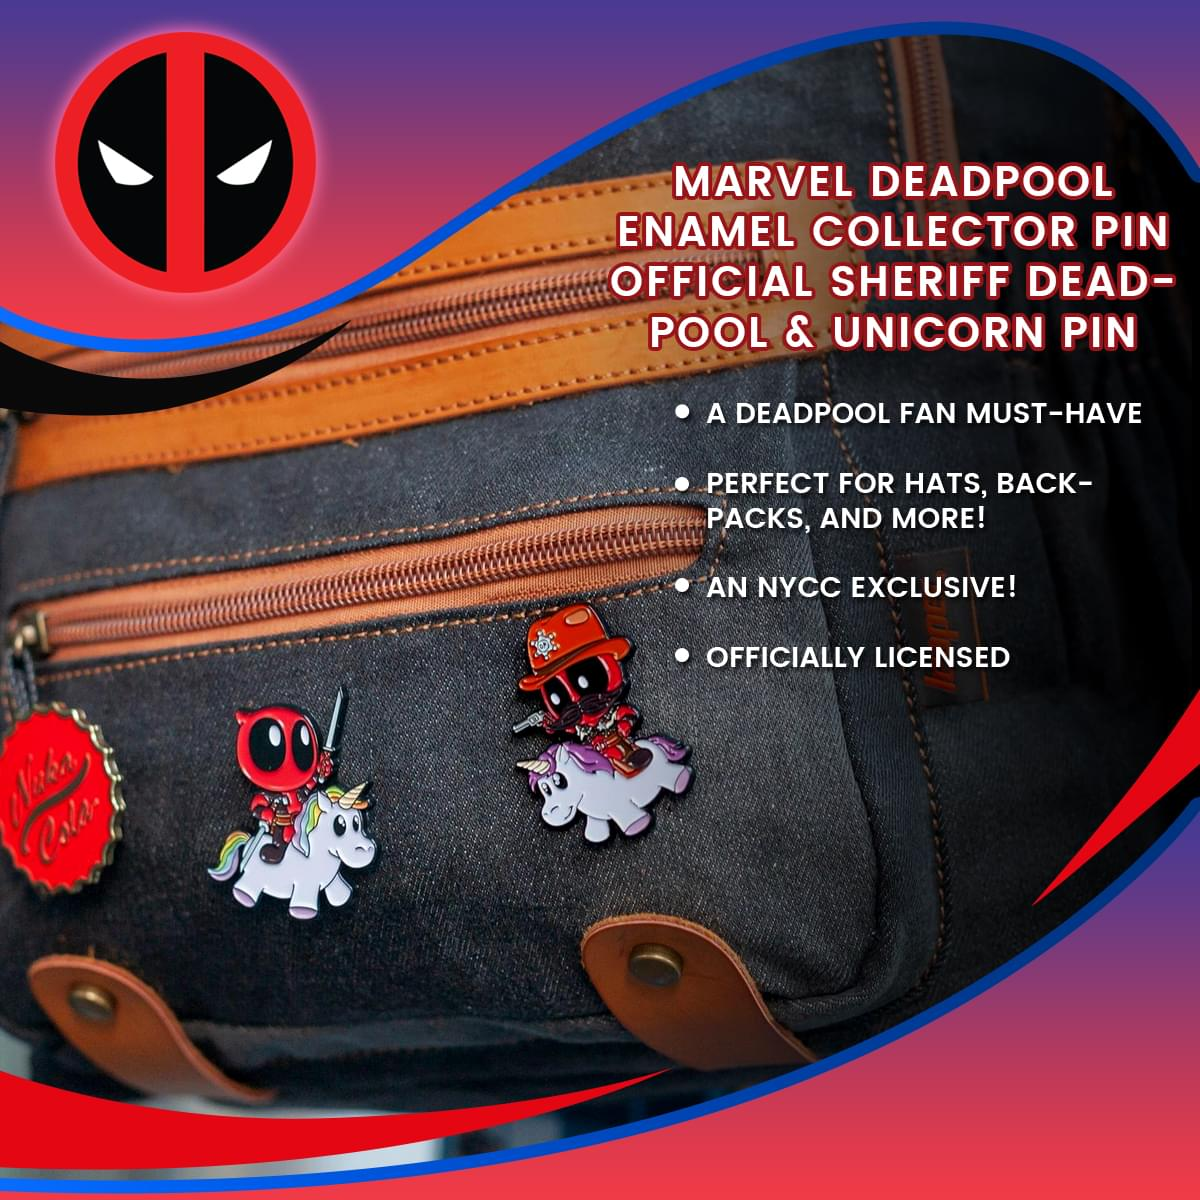 Marvel Deadpool Enamel Collector Pin | Official Sheriff Deadpool & Unicorn Pin